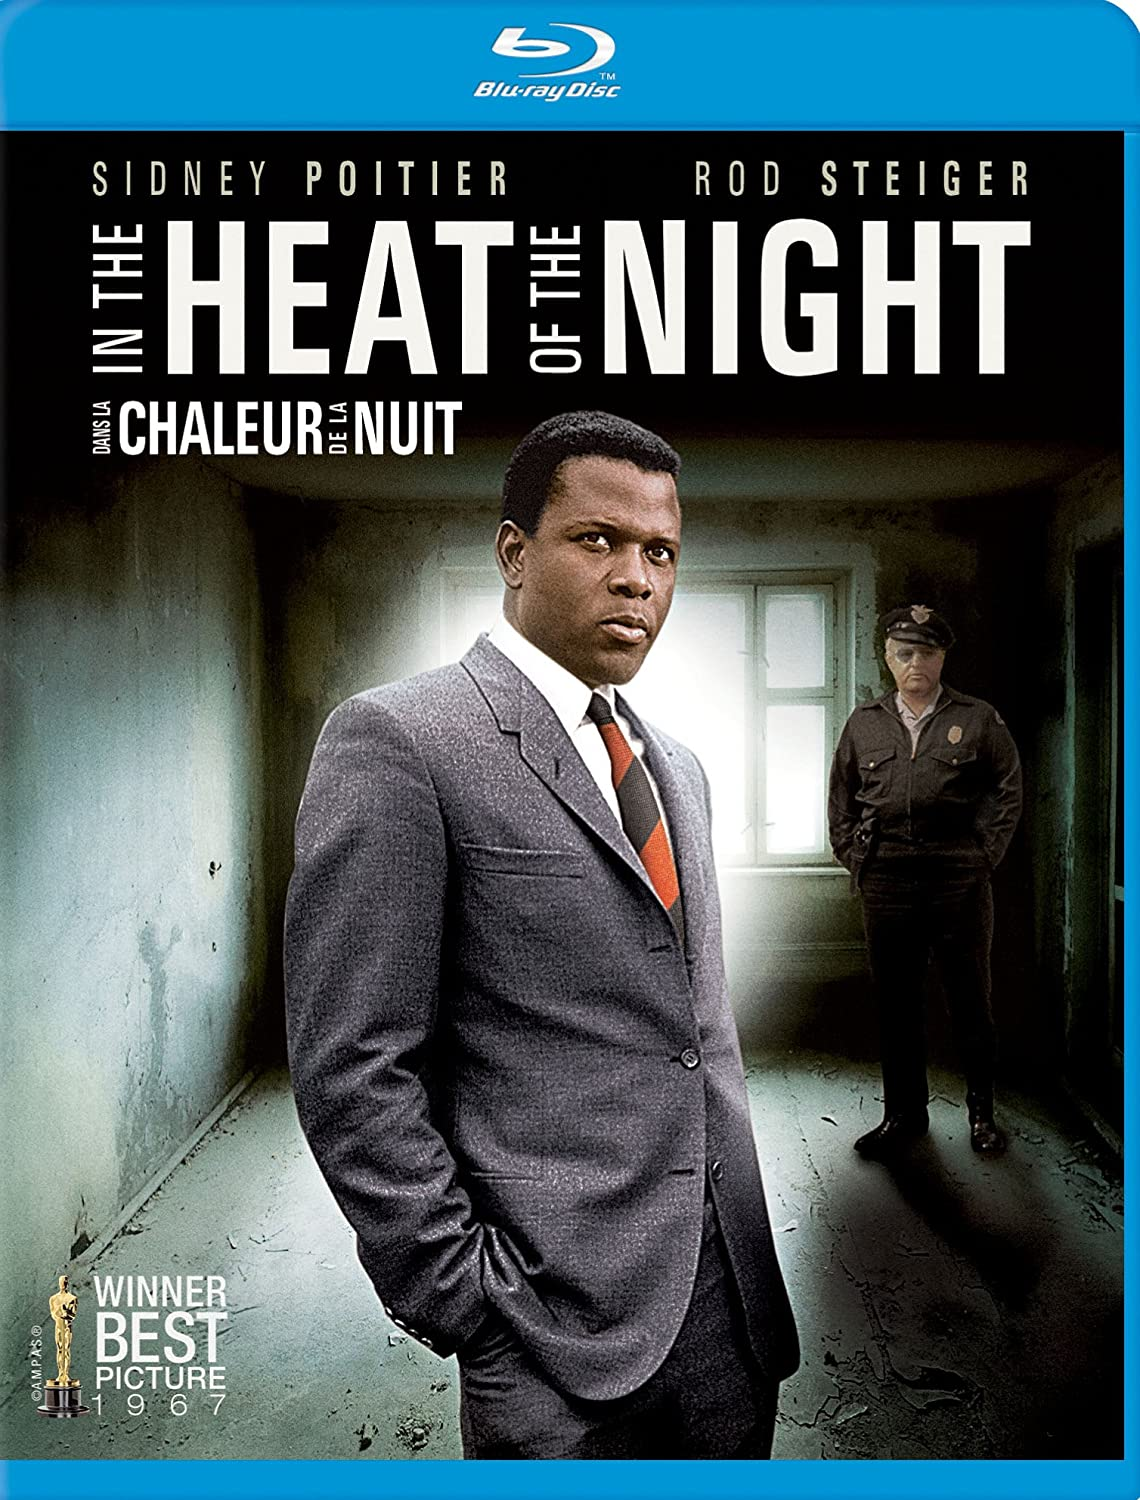 In The Heat Of The Night (Bilingual) [Blu-ray] Sidney Poitier MGM